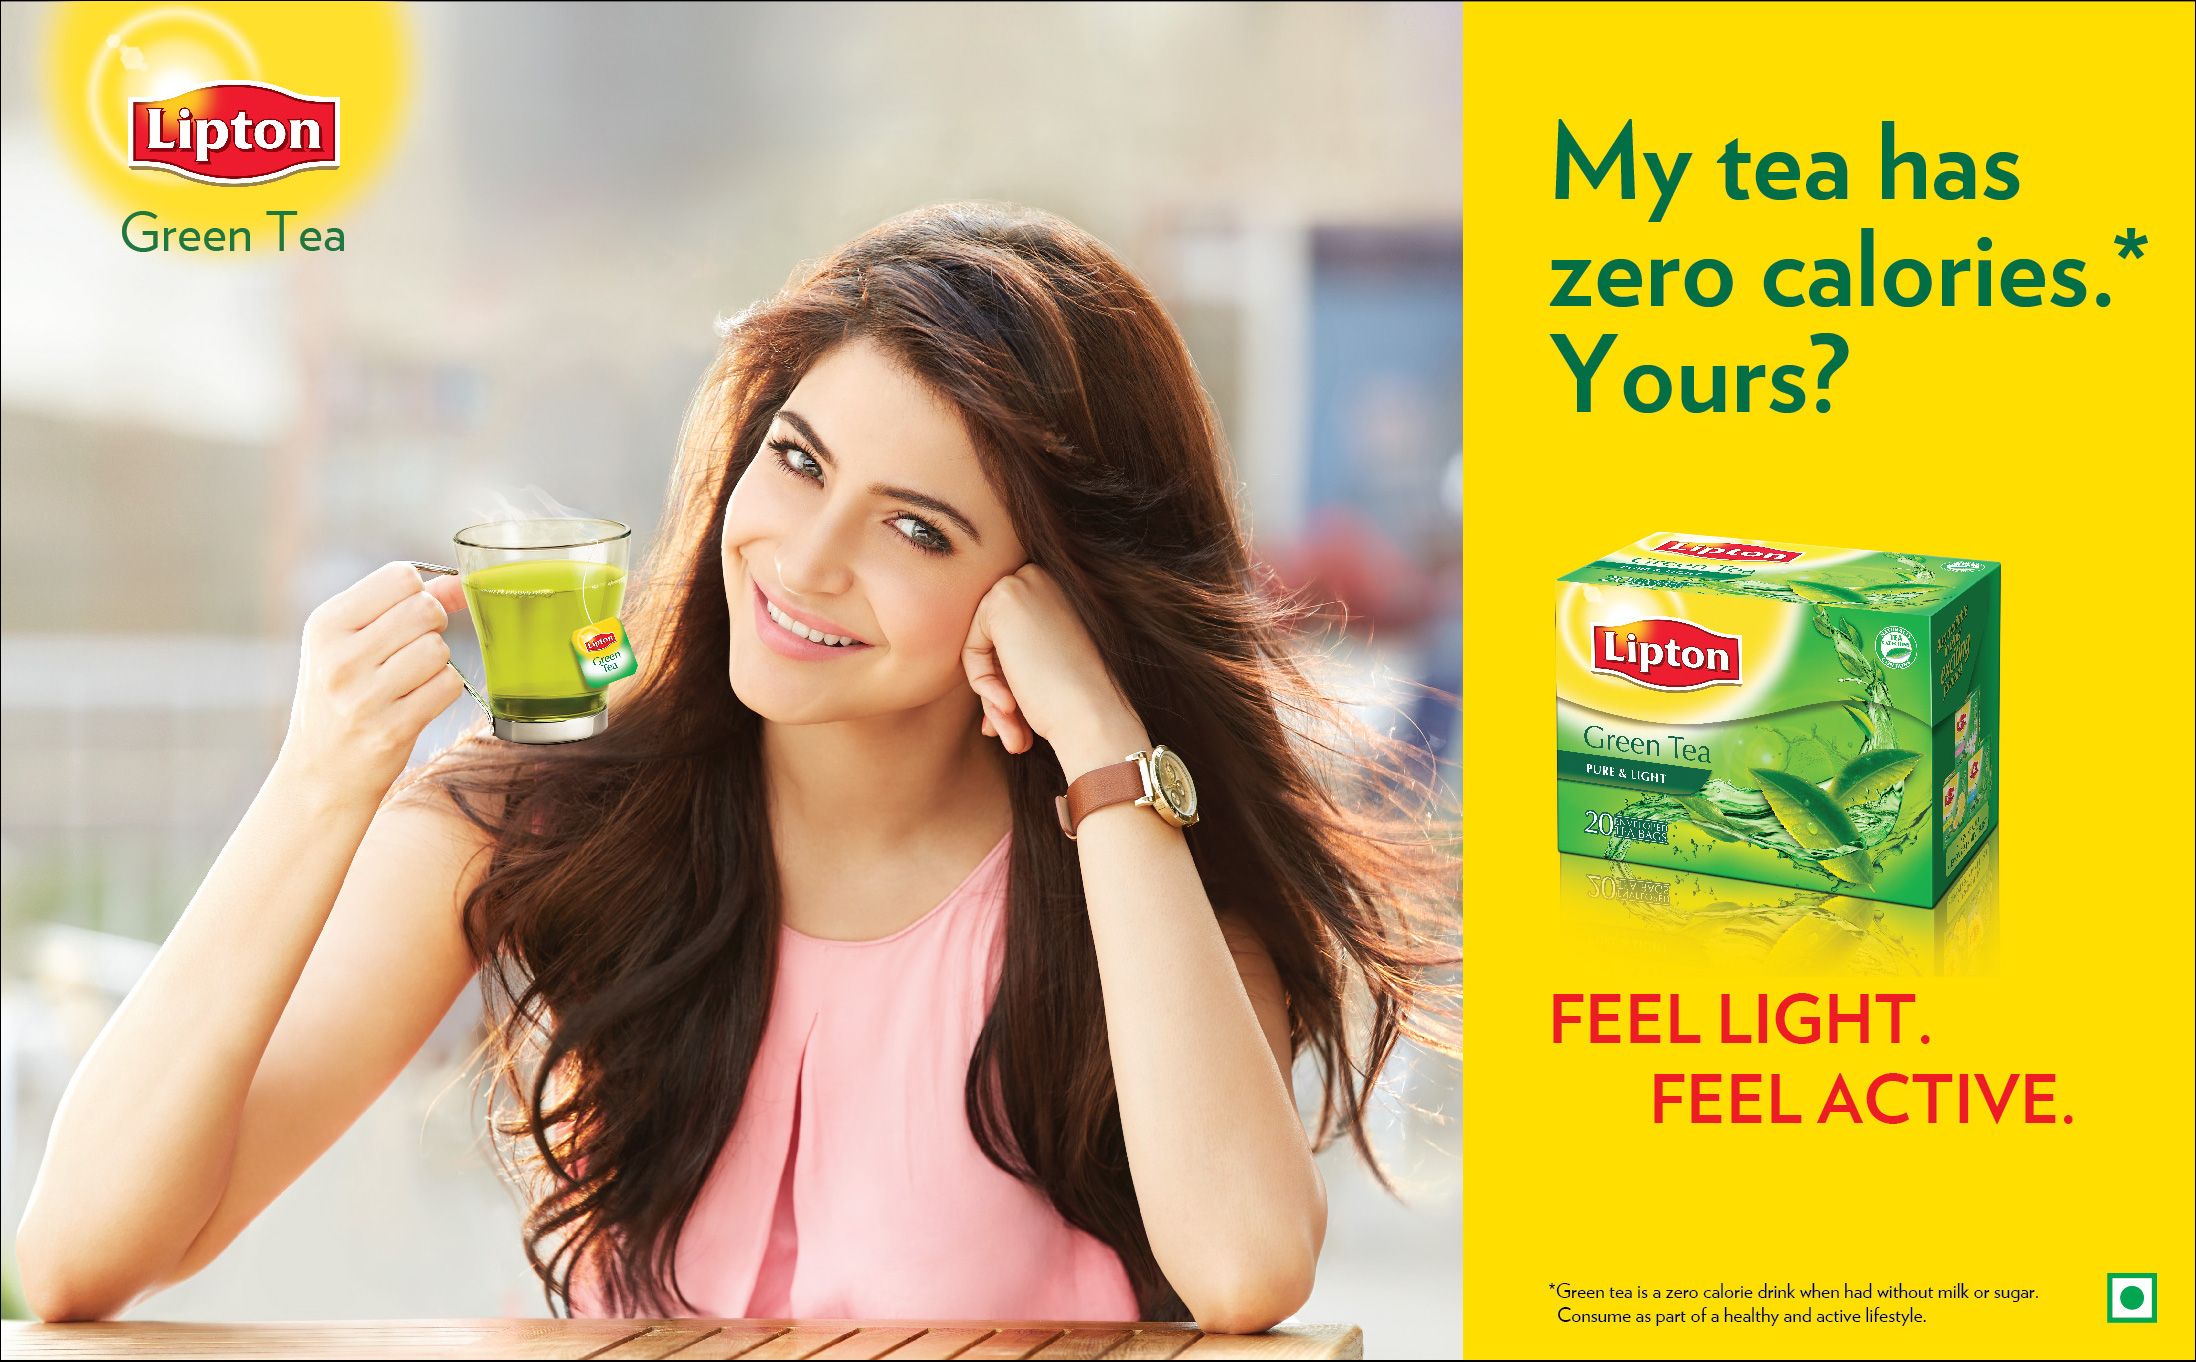 http://www.pinkvilla.com/files/Lipton-green-tea-OOH_big.jpg